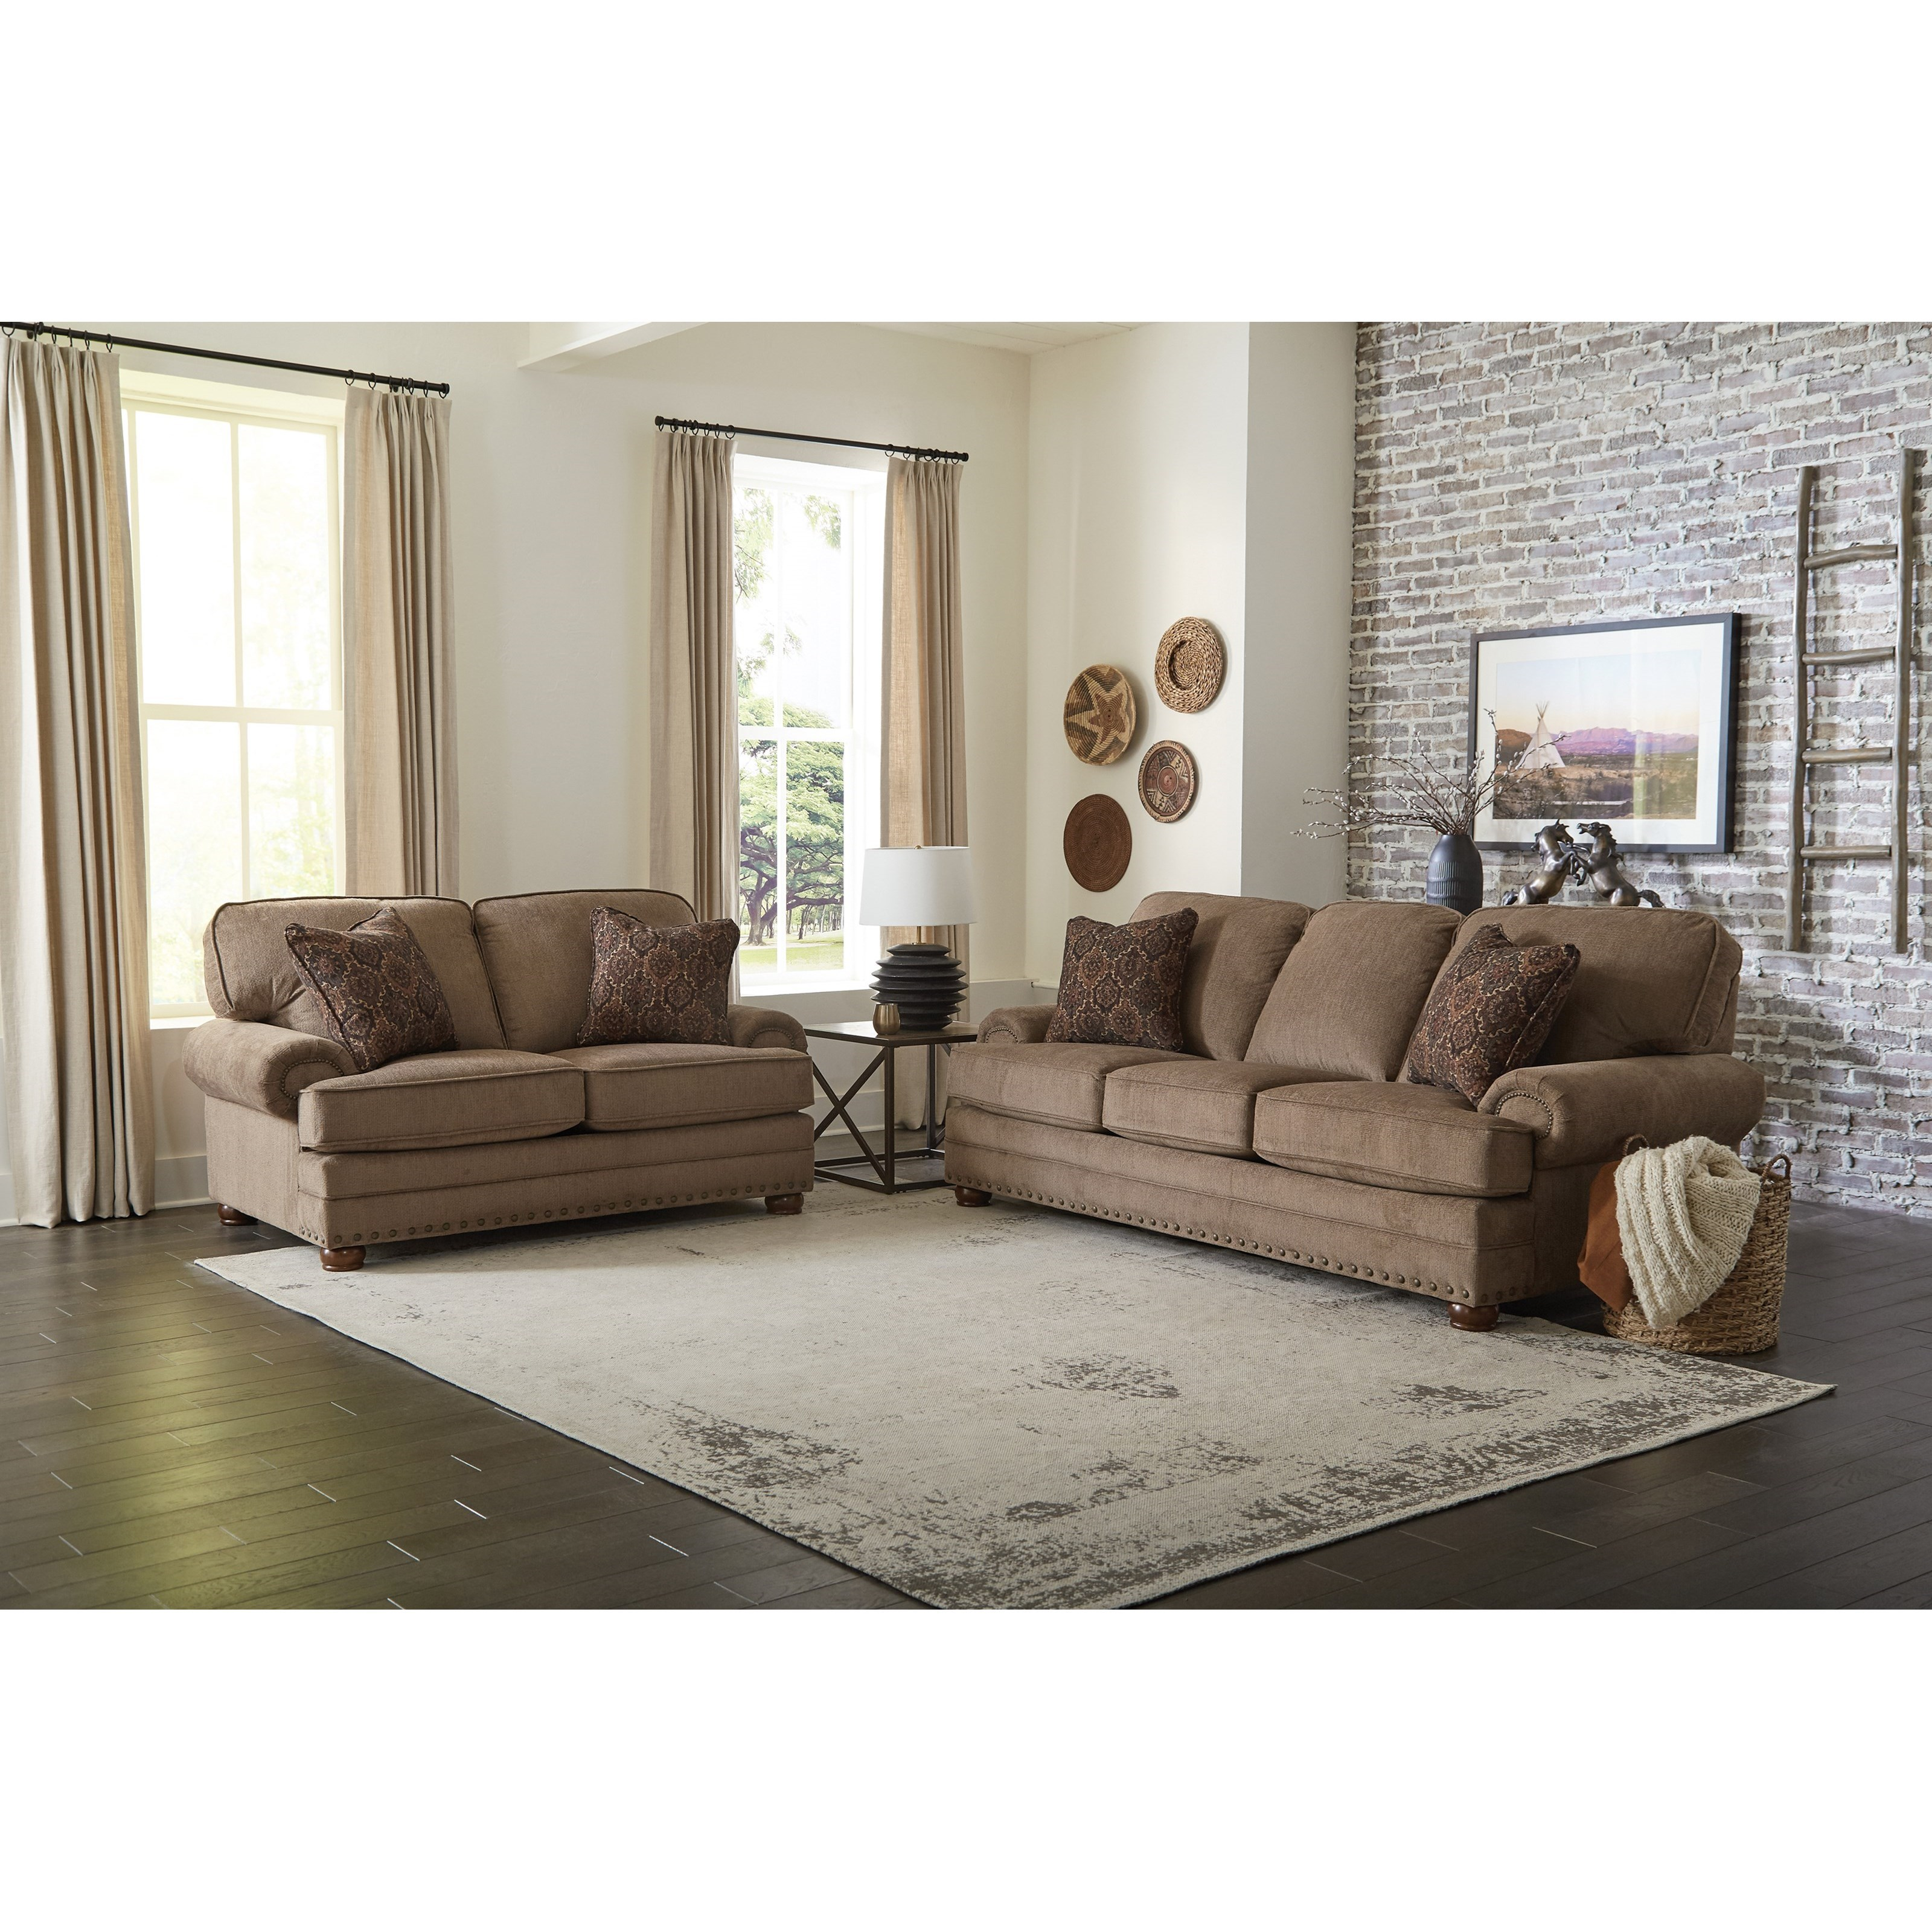 Singletary Living Room Group by Jackson Furniture at Northeast Factory Direct